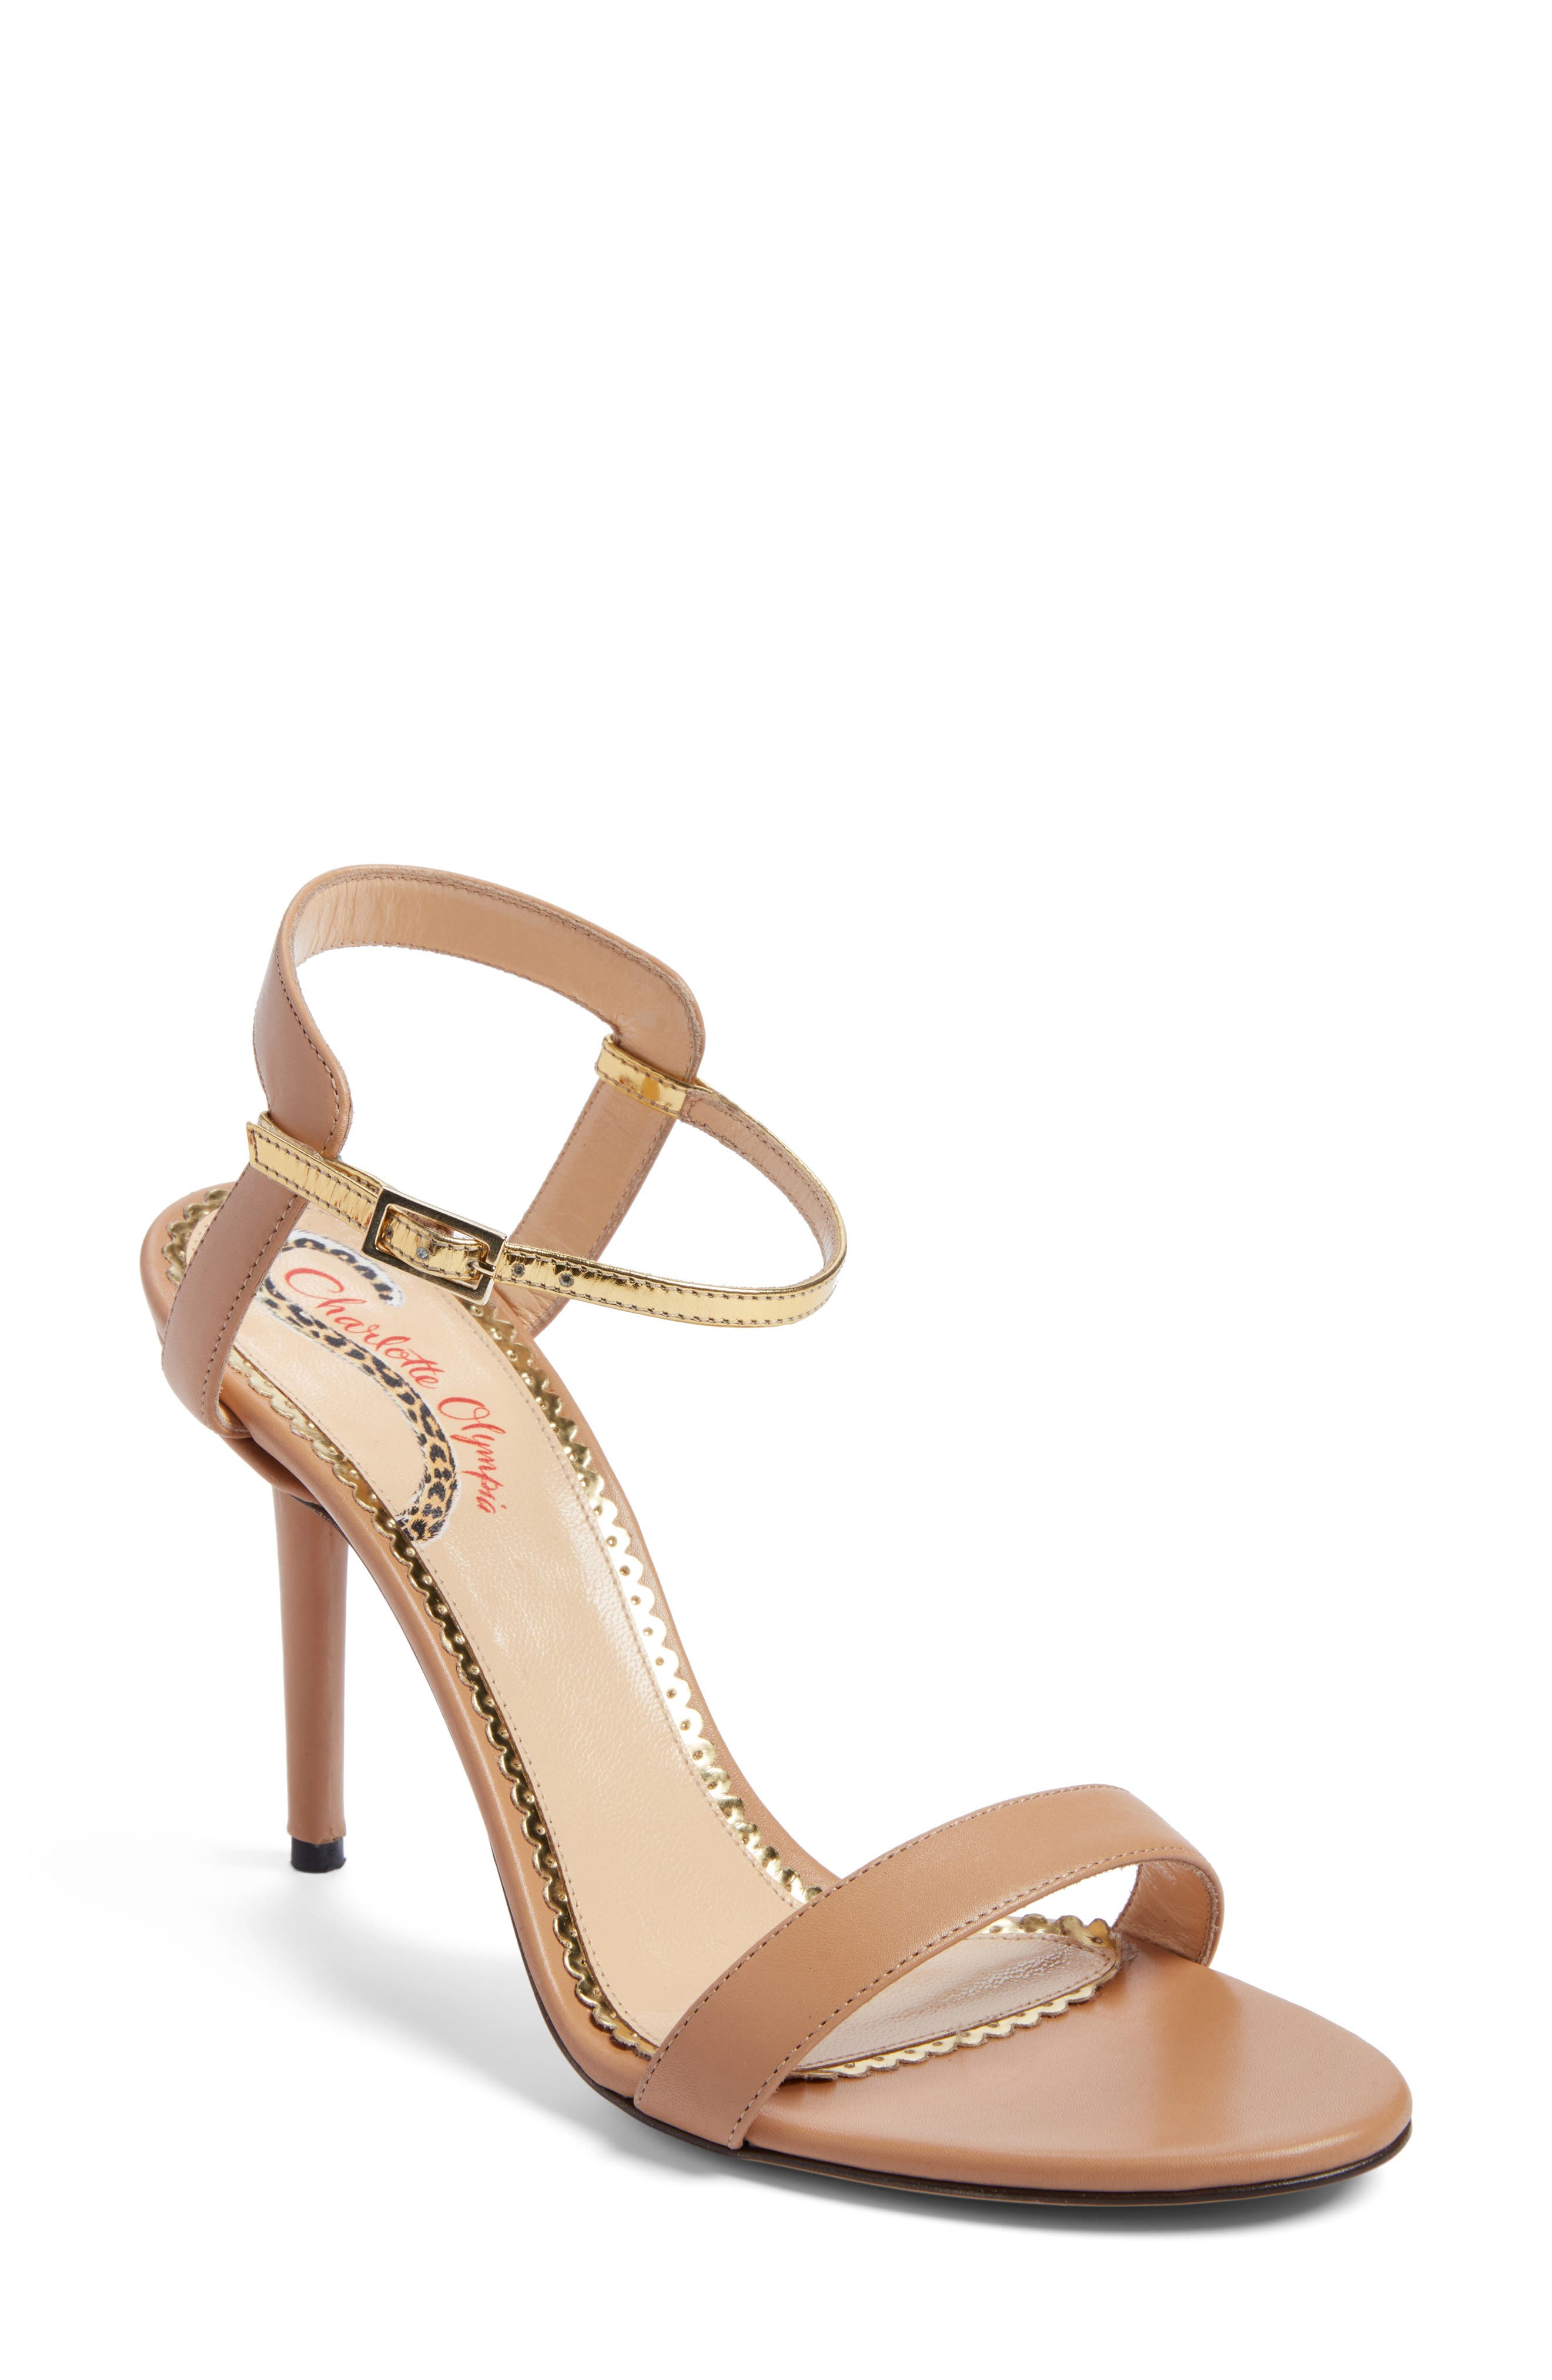 Charlotte Olympia Quintessential Sandal (Women)